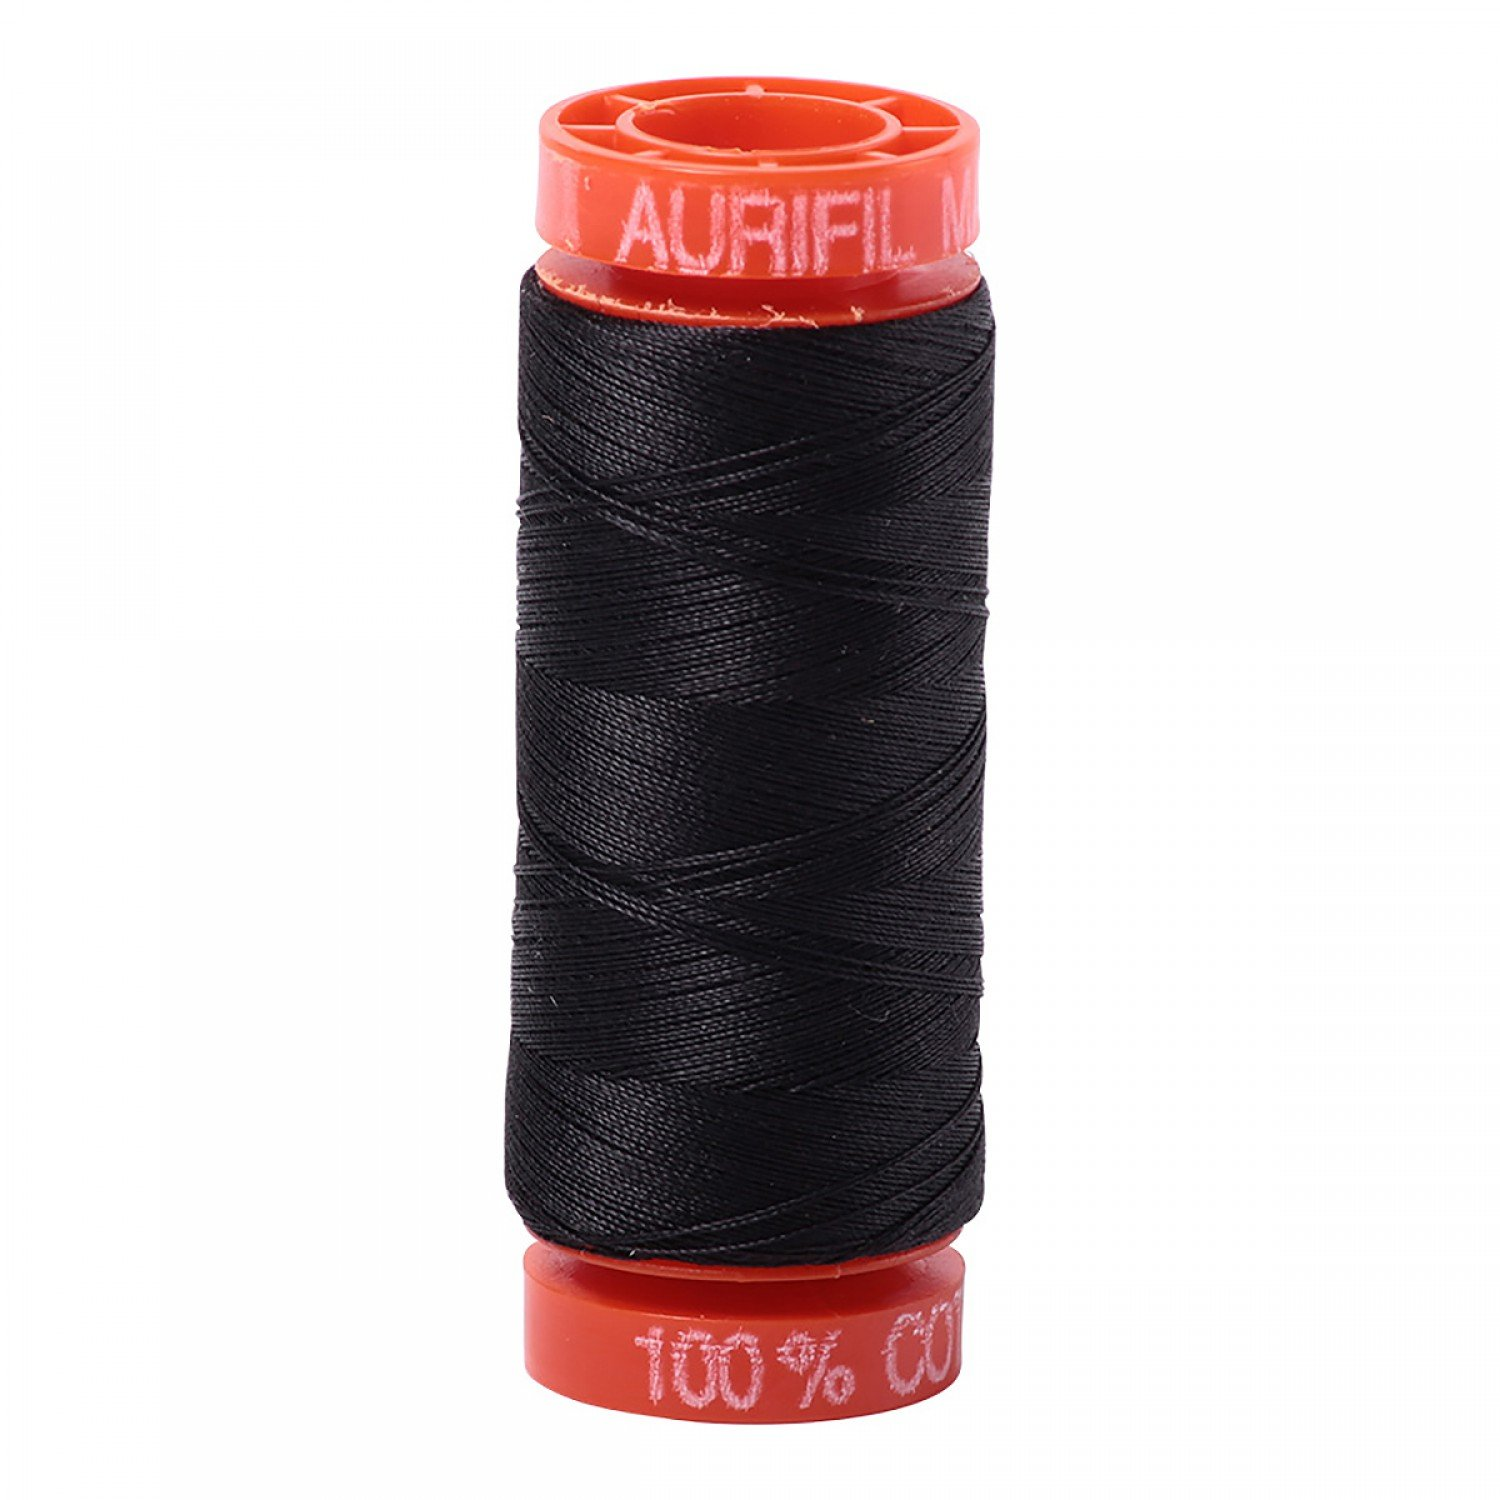 50 wt Aurifil - AS4241 Dark Grey